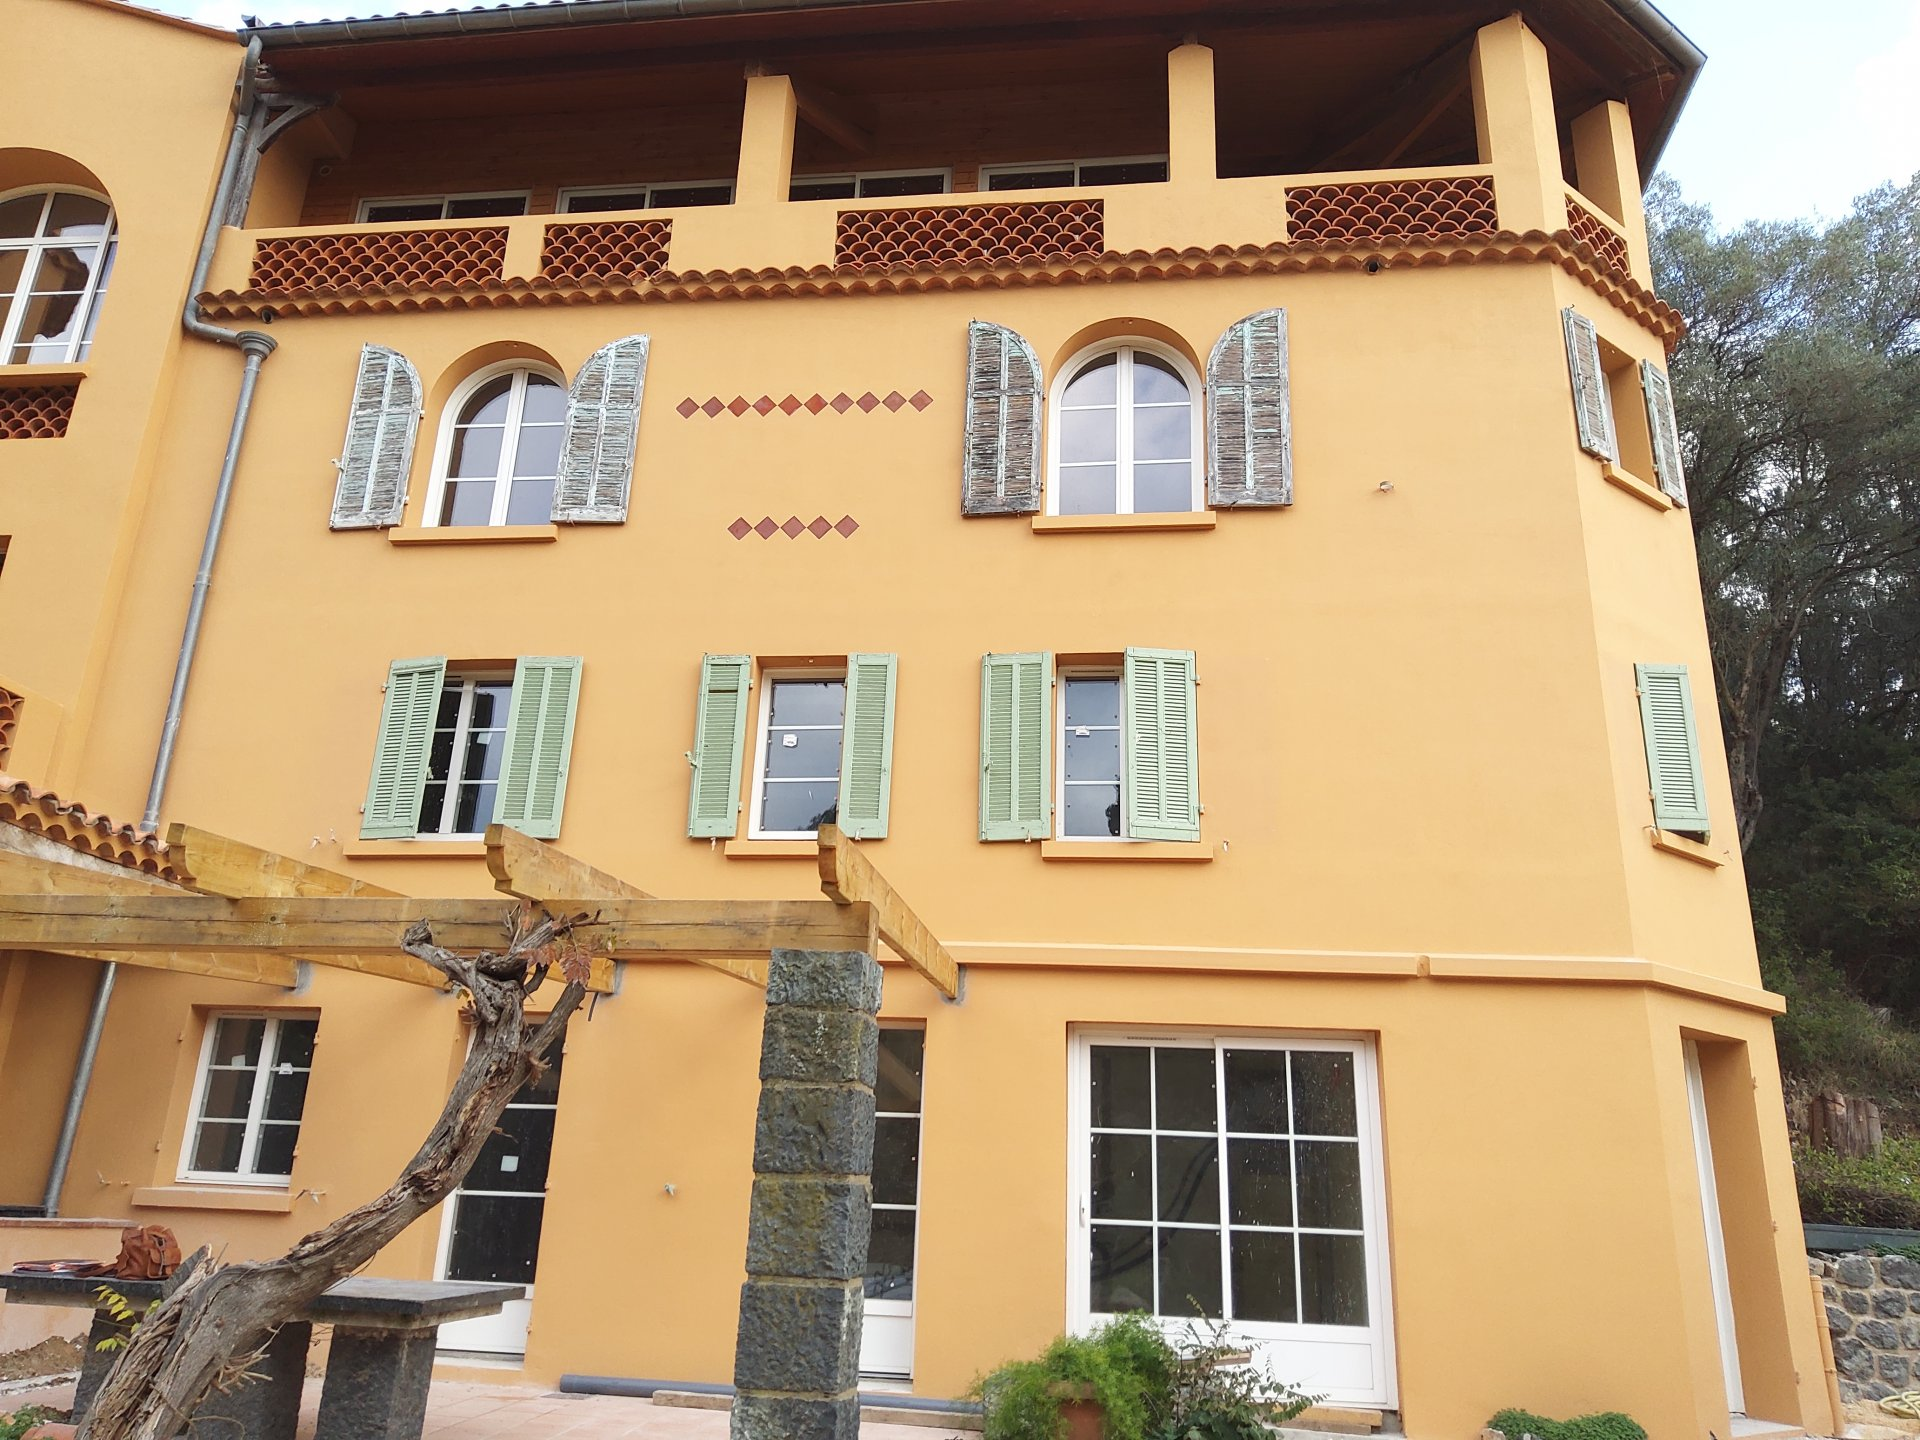 CAVALAIRE - RARE AND VERY ATYPICAL - BUILDING FROM 1930